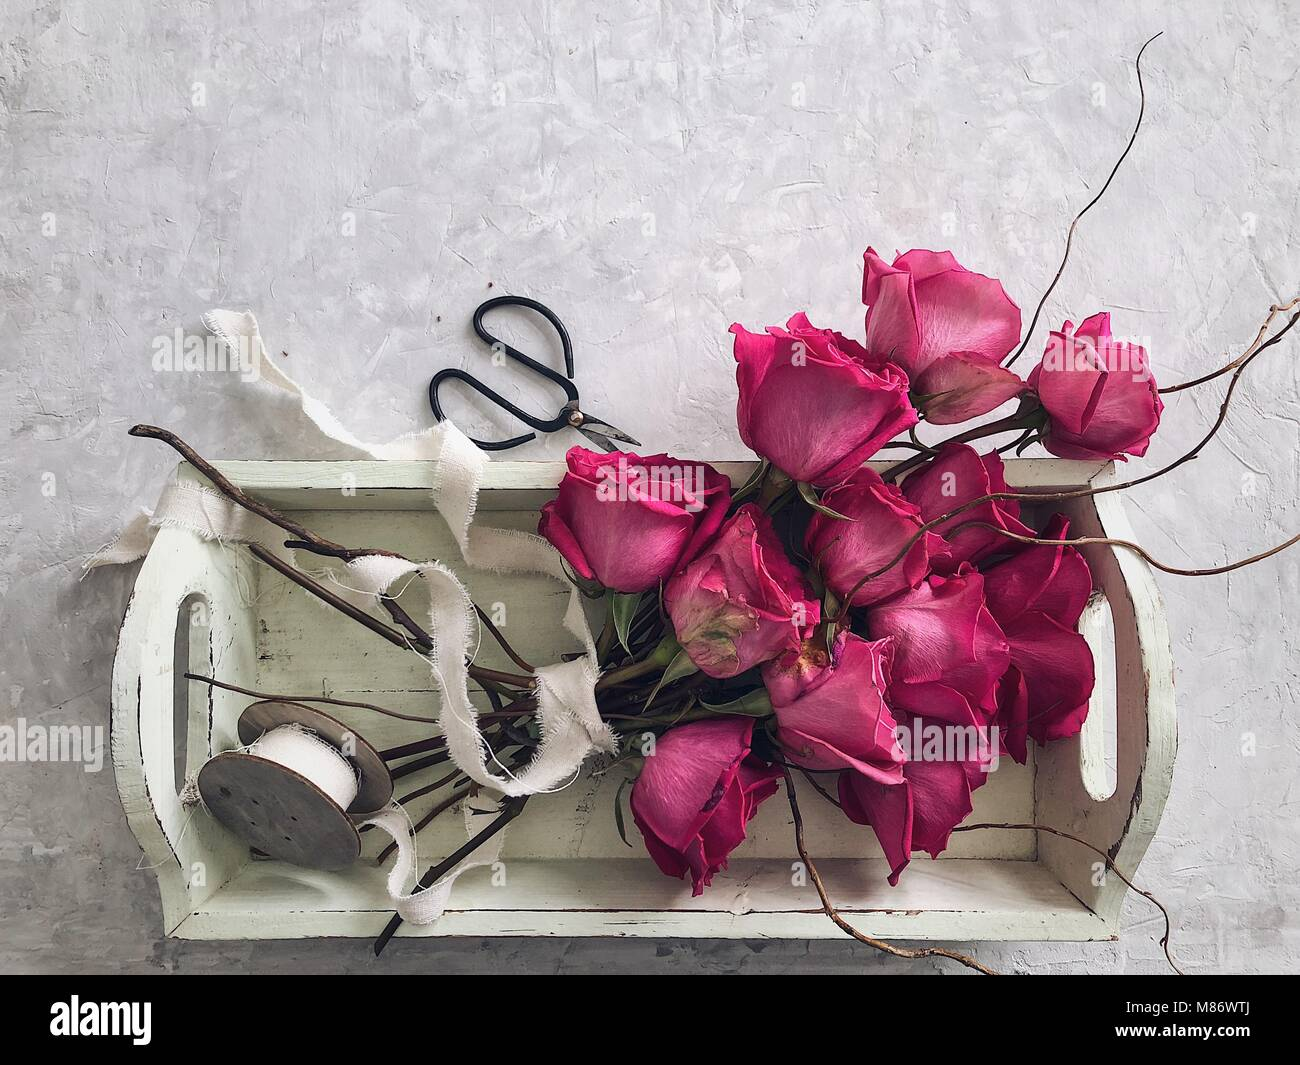 Bouquet of roses on a tray with ribbon and scissors - Stock Image